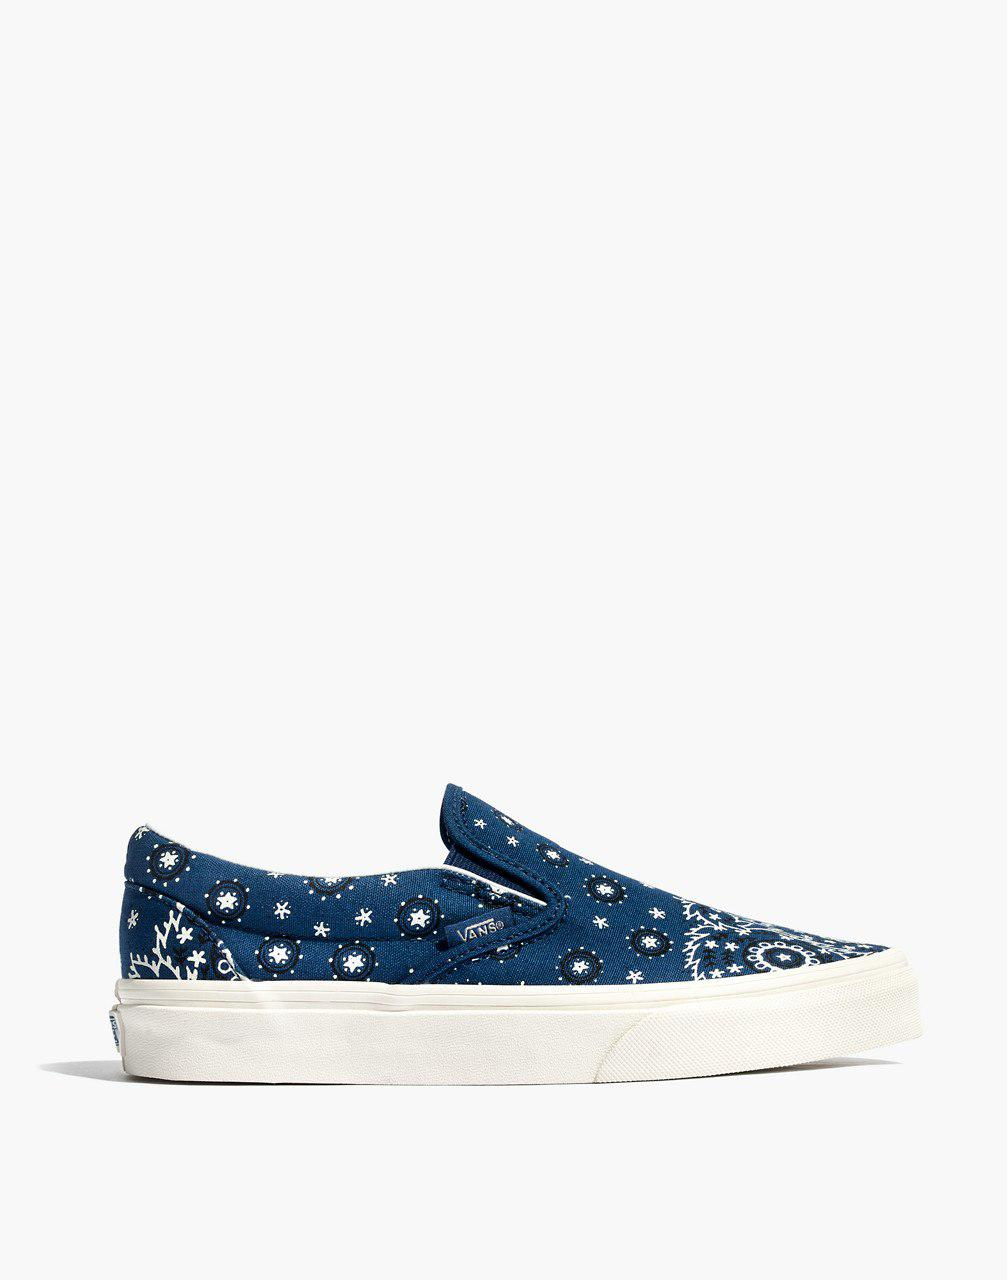 52aa51a157 Lyst - Madewell X Vans Unisex Classic Slip-on Sneakers In Bandana ...